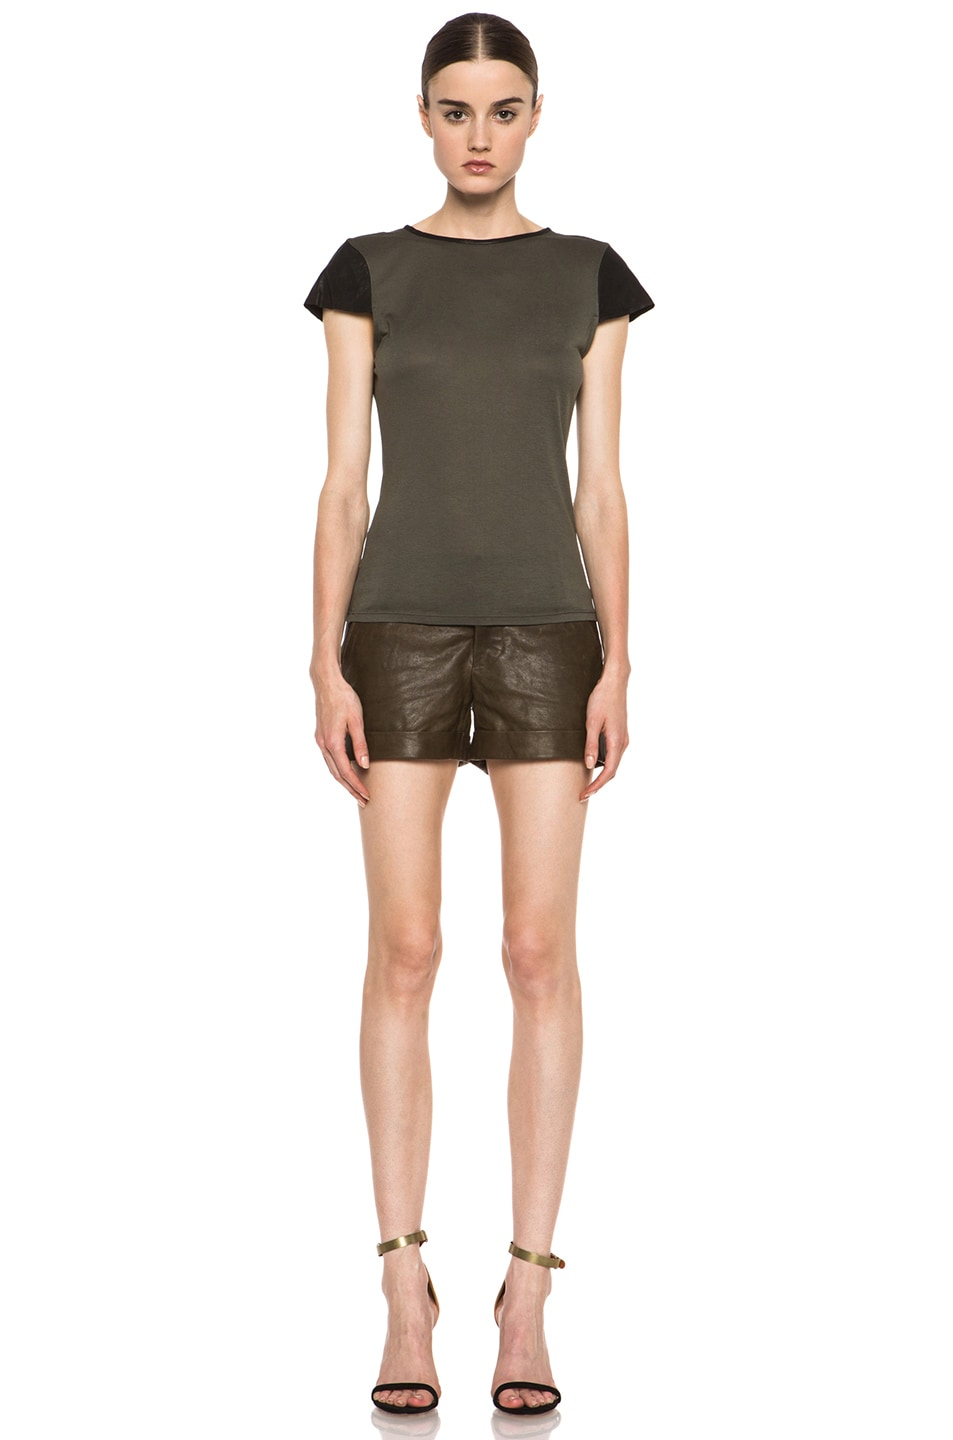 Image 5 of Alice + Olivia Fitted Viscose Tee with Leather in Old Army